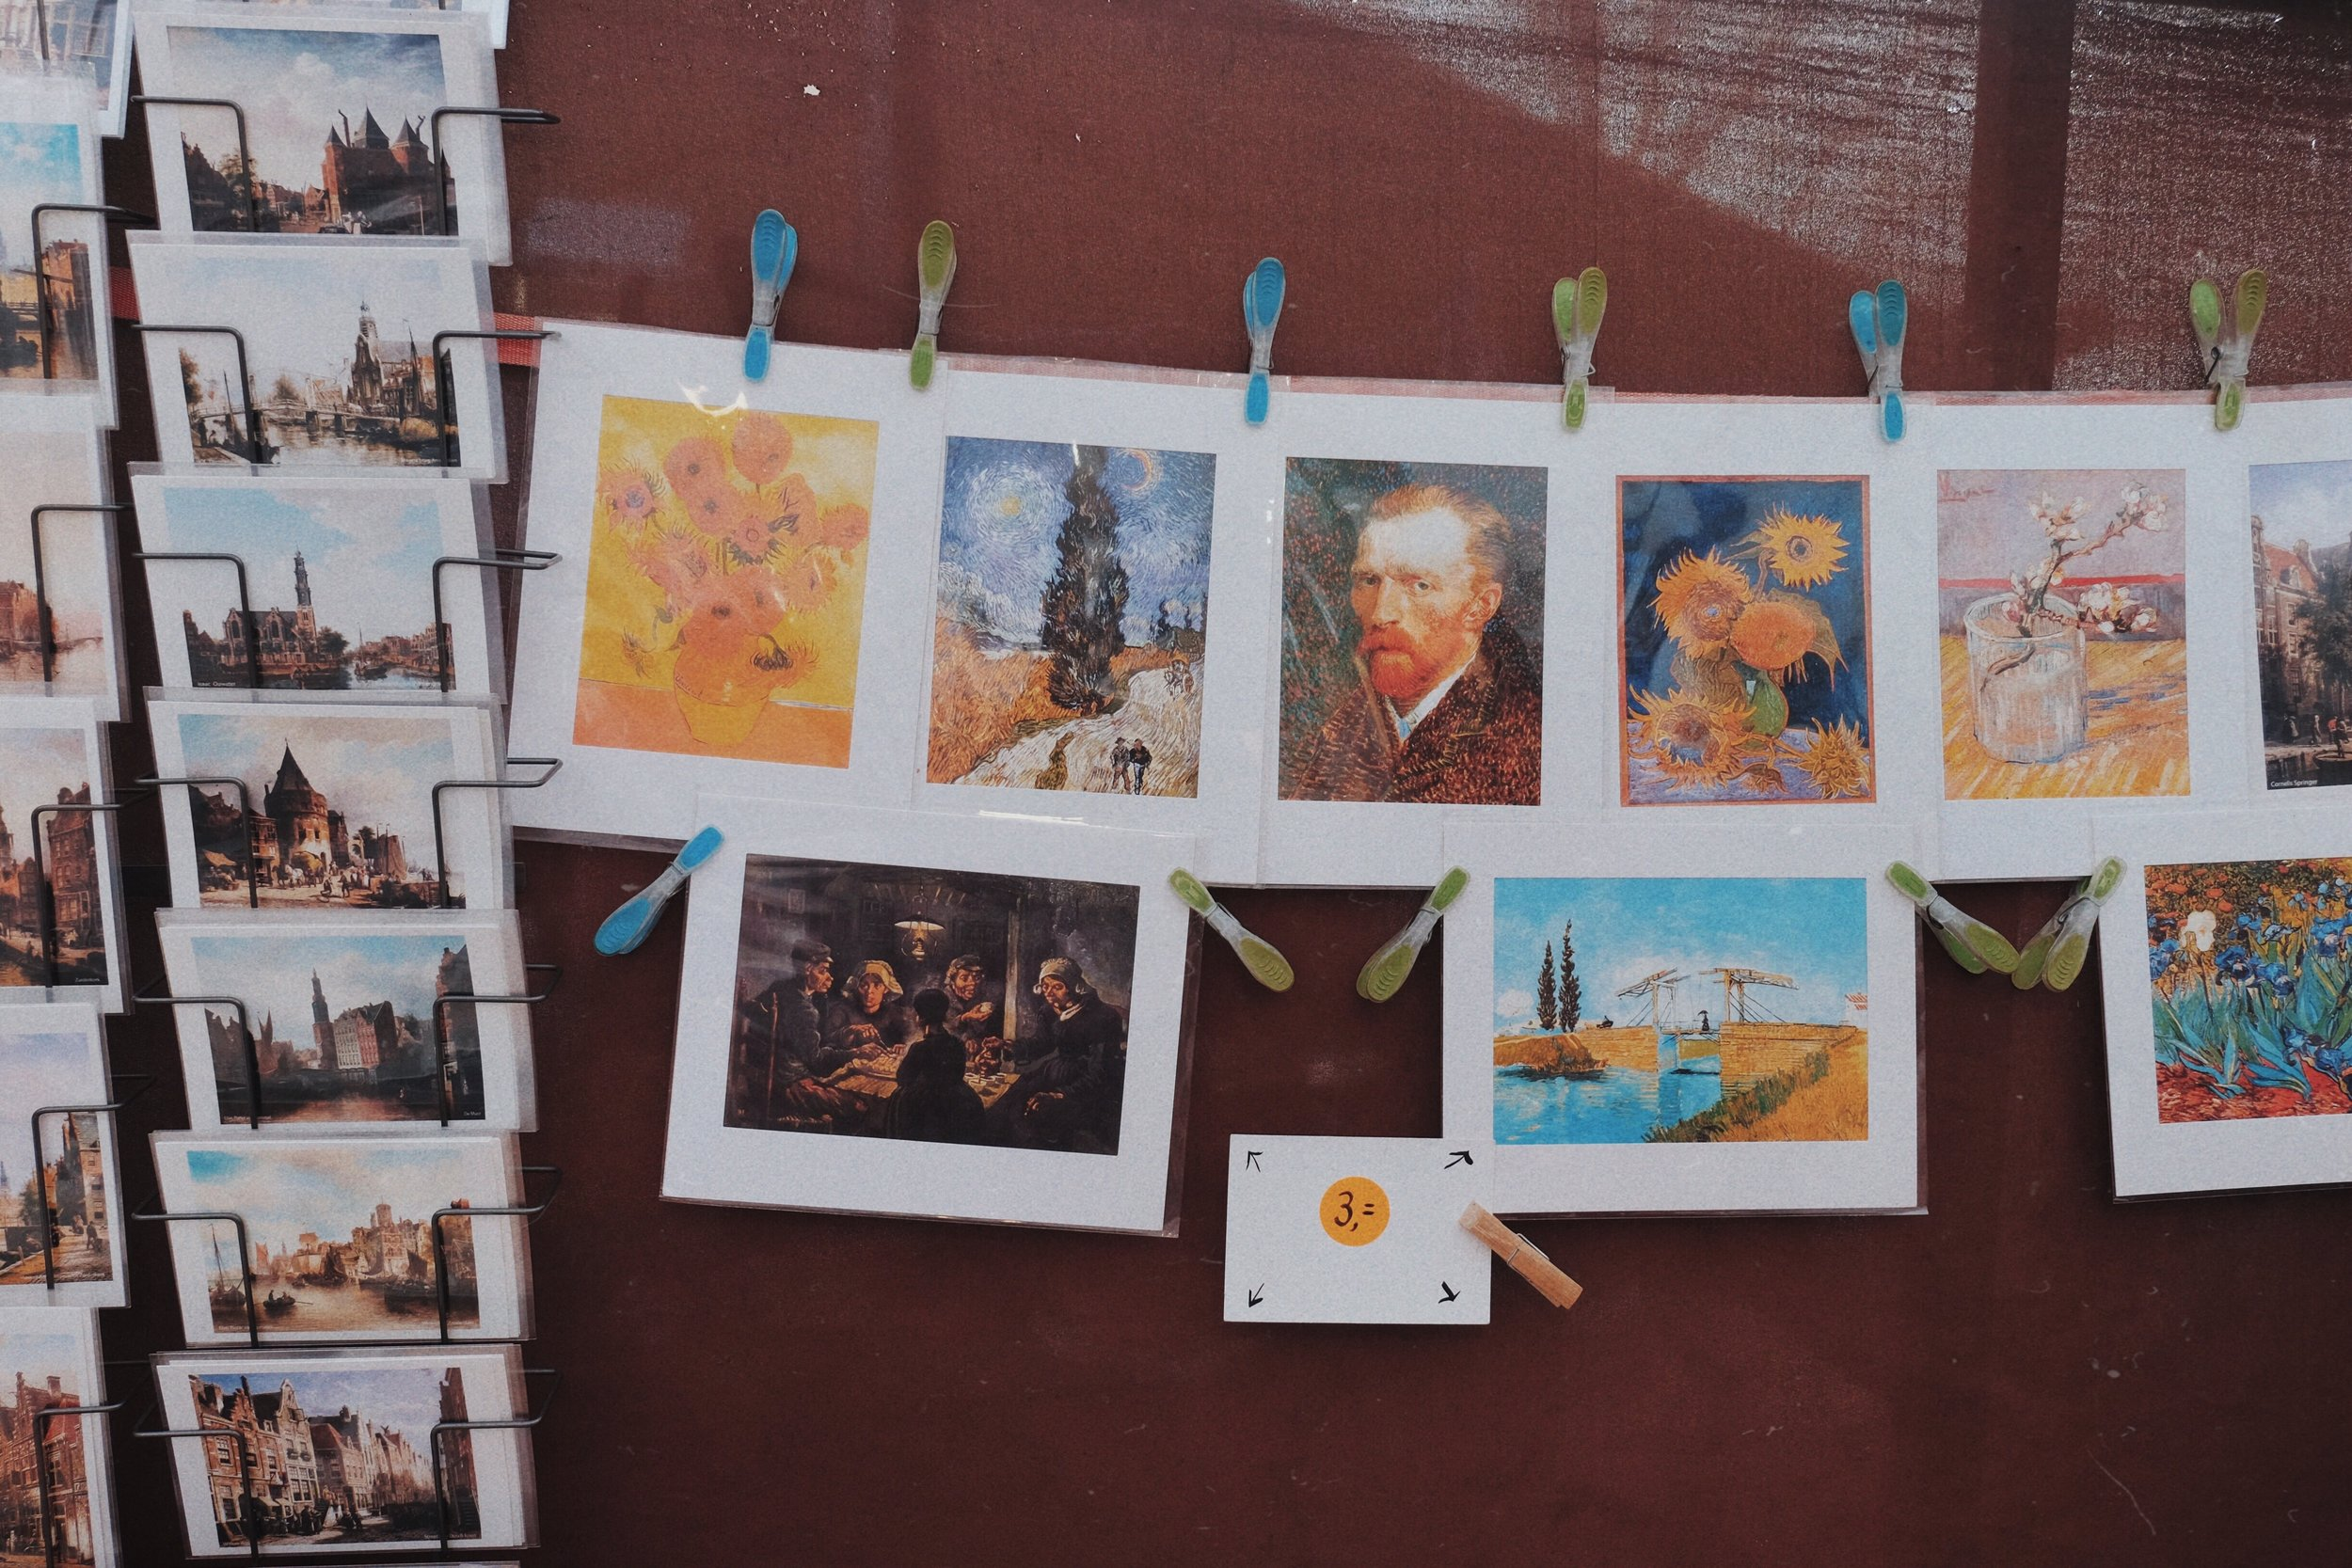 postcards and prints featuring Vincent van Gogh's famous works.